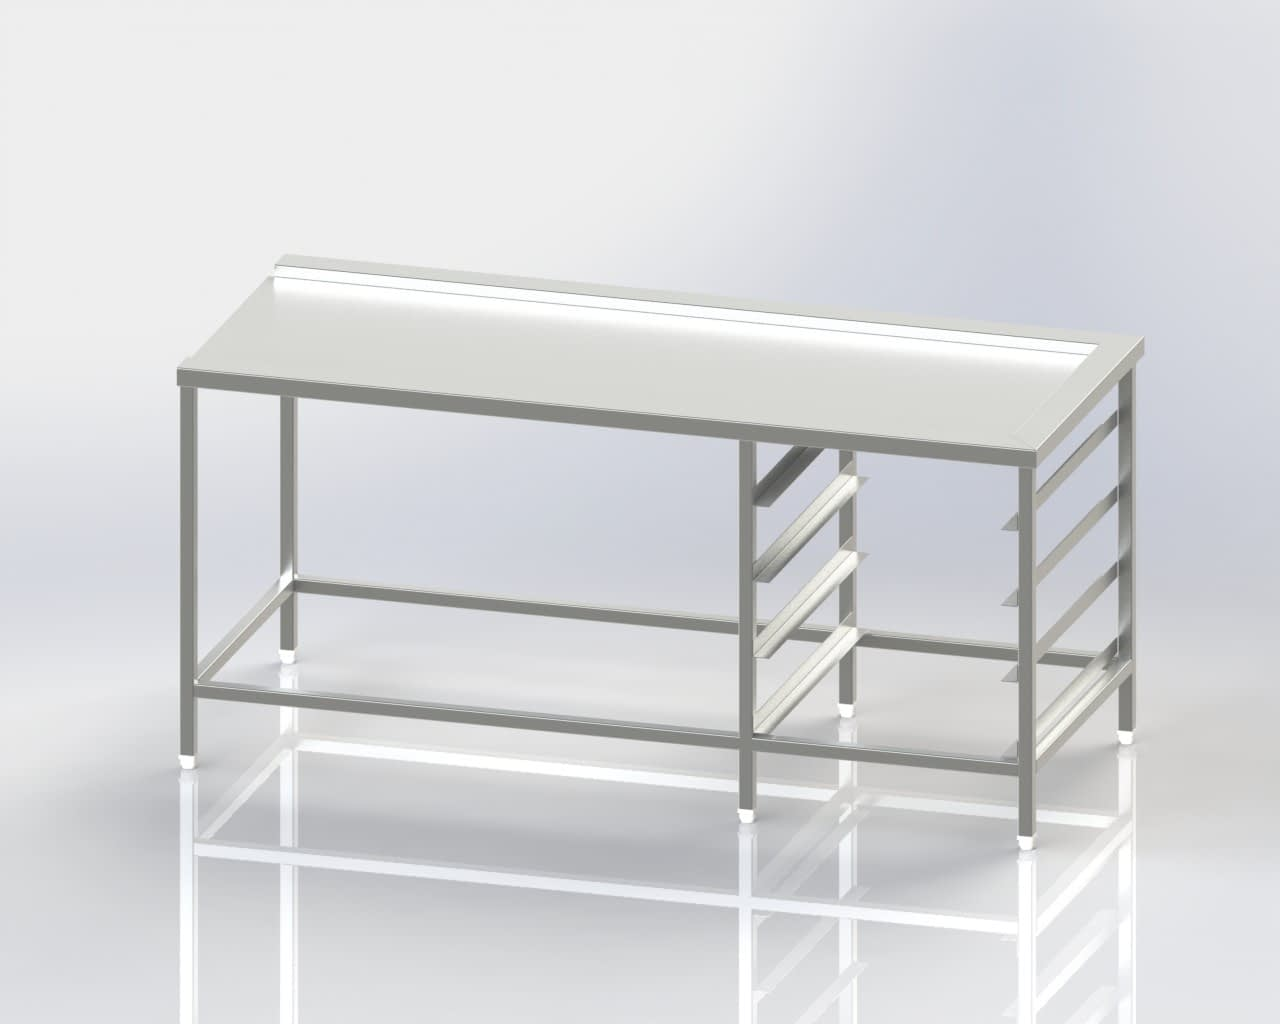 Dish Washer Outlet - Clean Dish Landing Table - Crate Storage